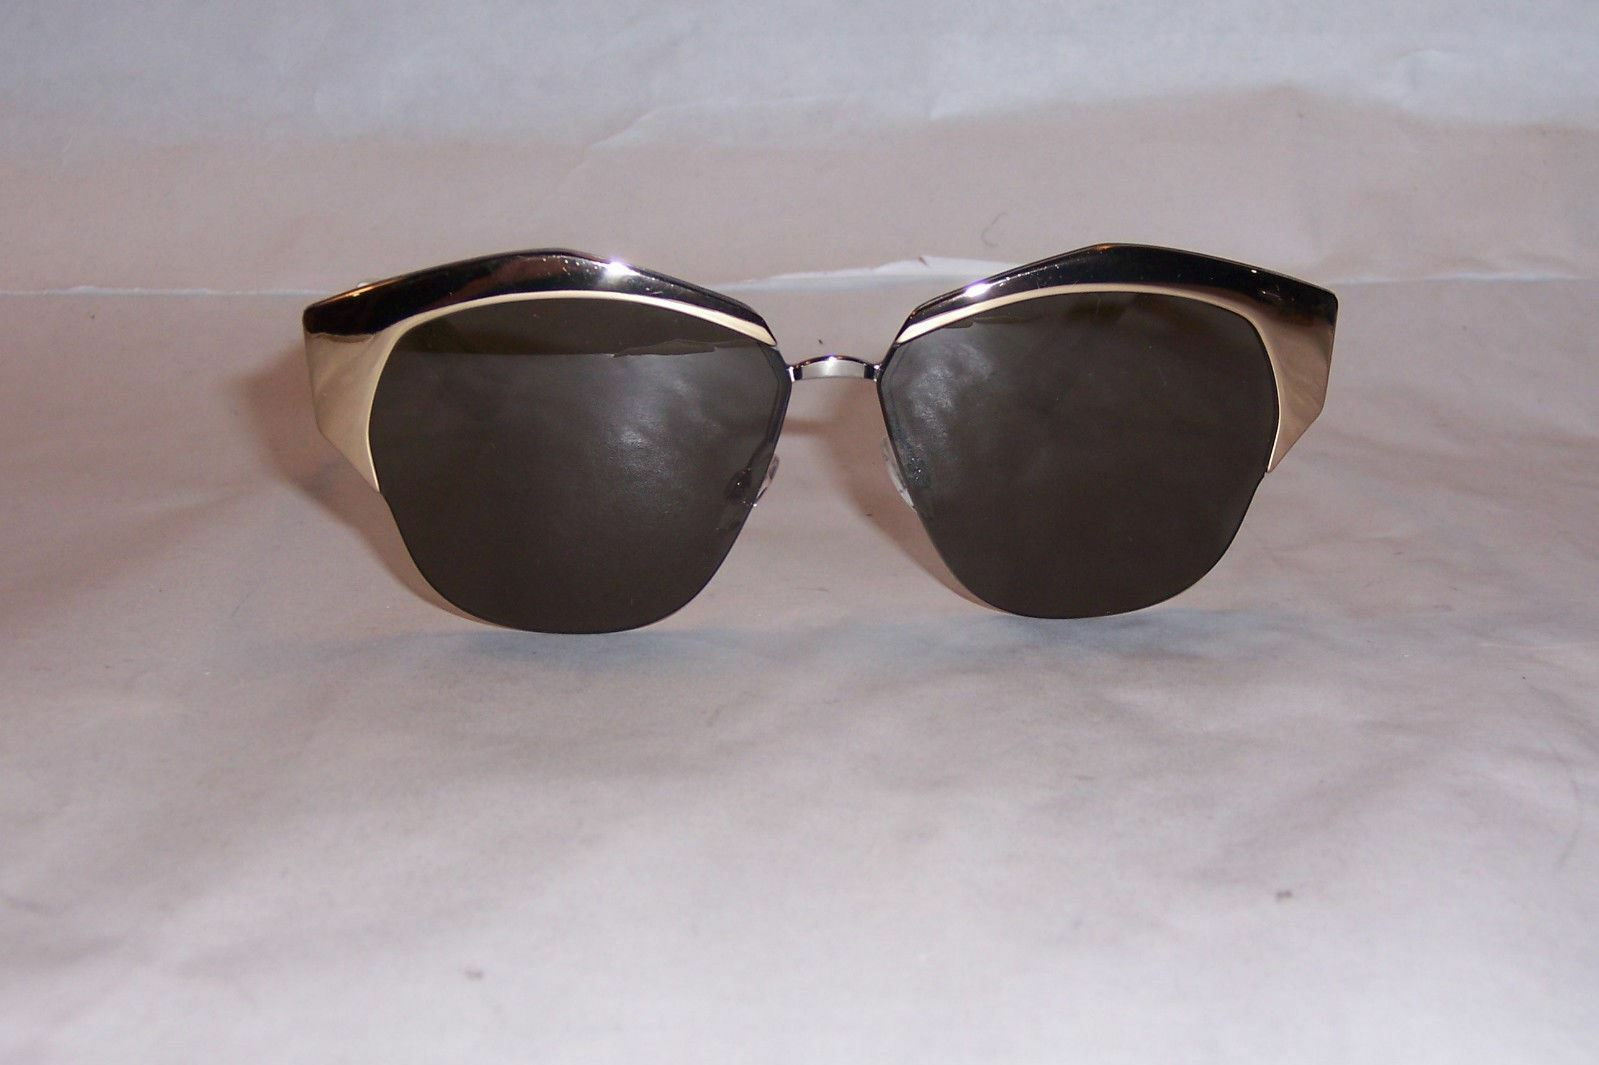 94bed42b821e Christian Dior Mirrored I206j Rose Gold Palladium Sunglasses Authentic RL  for sale online